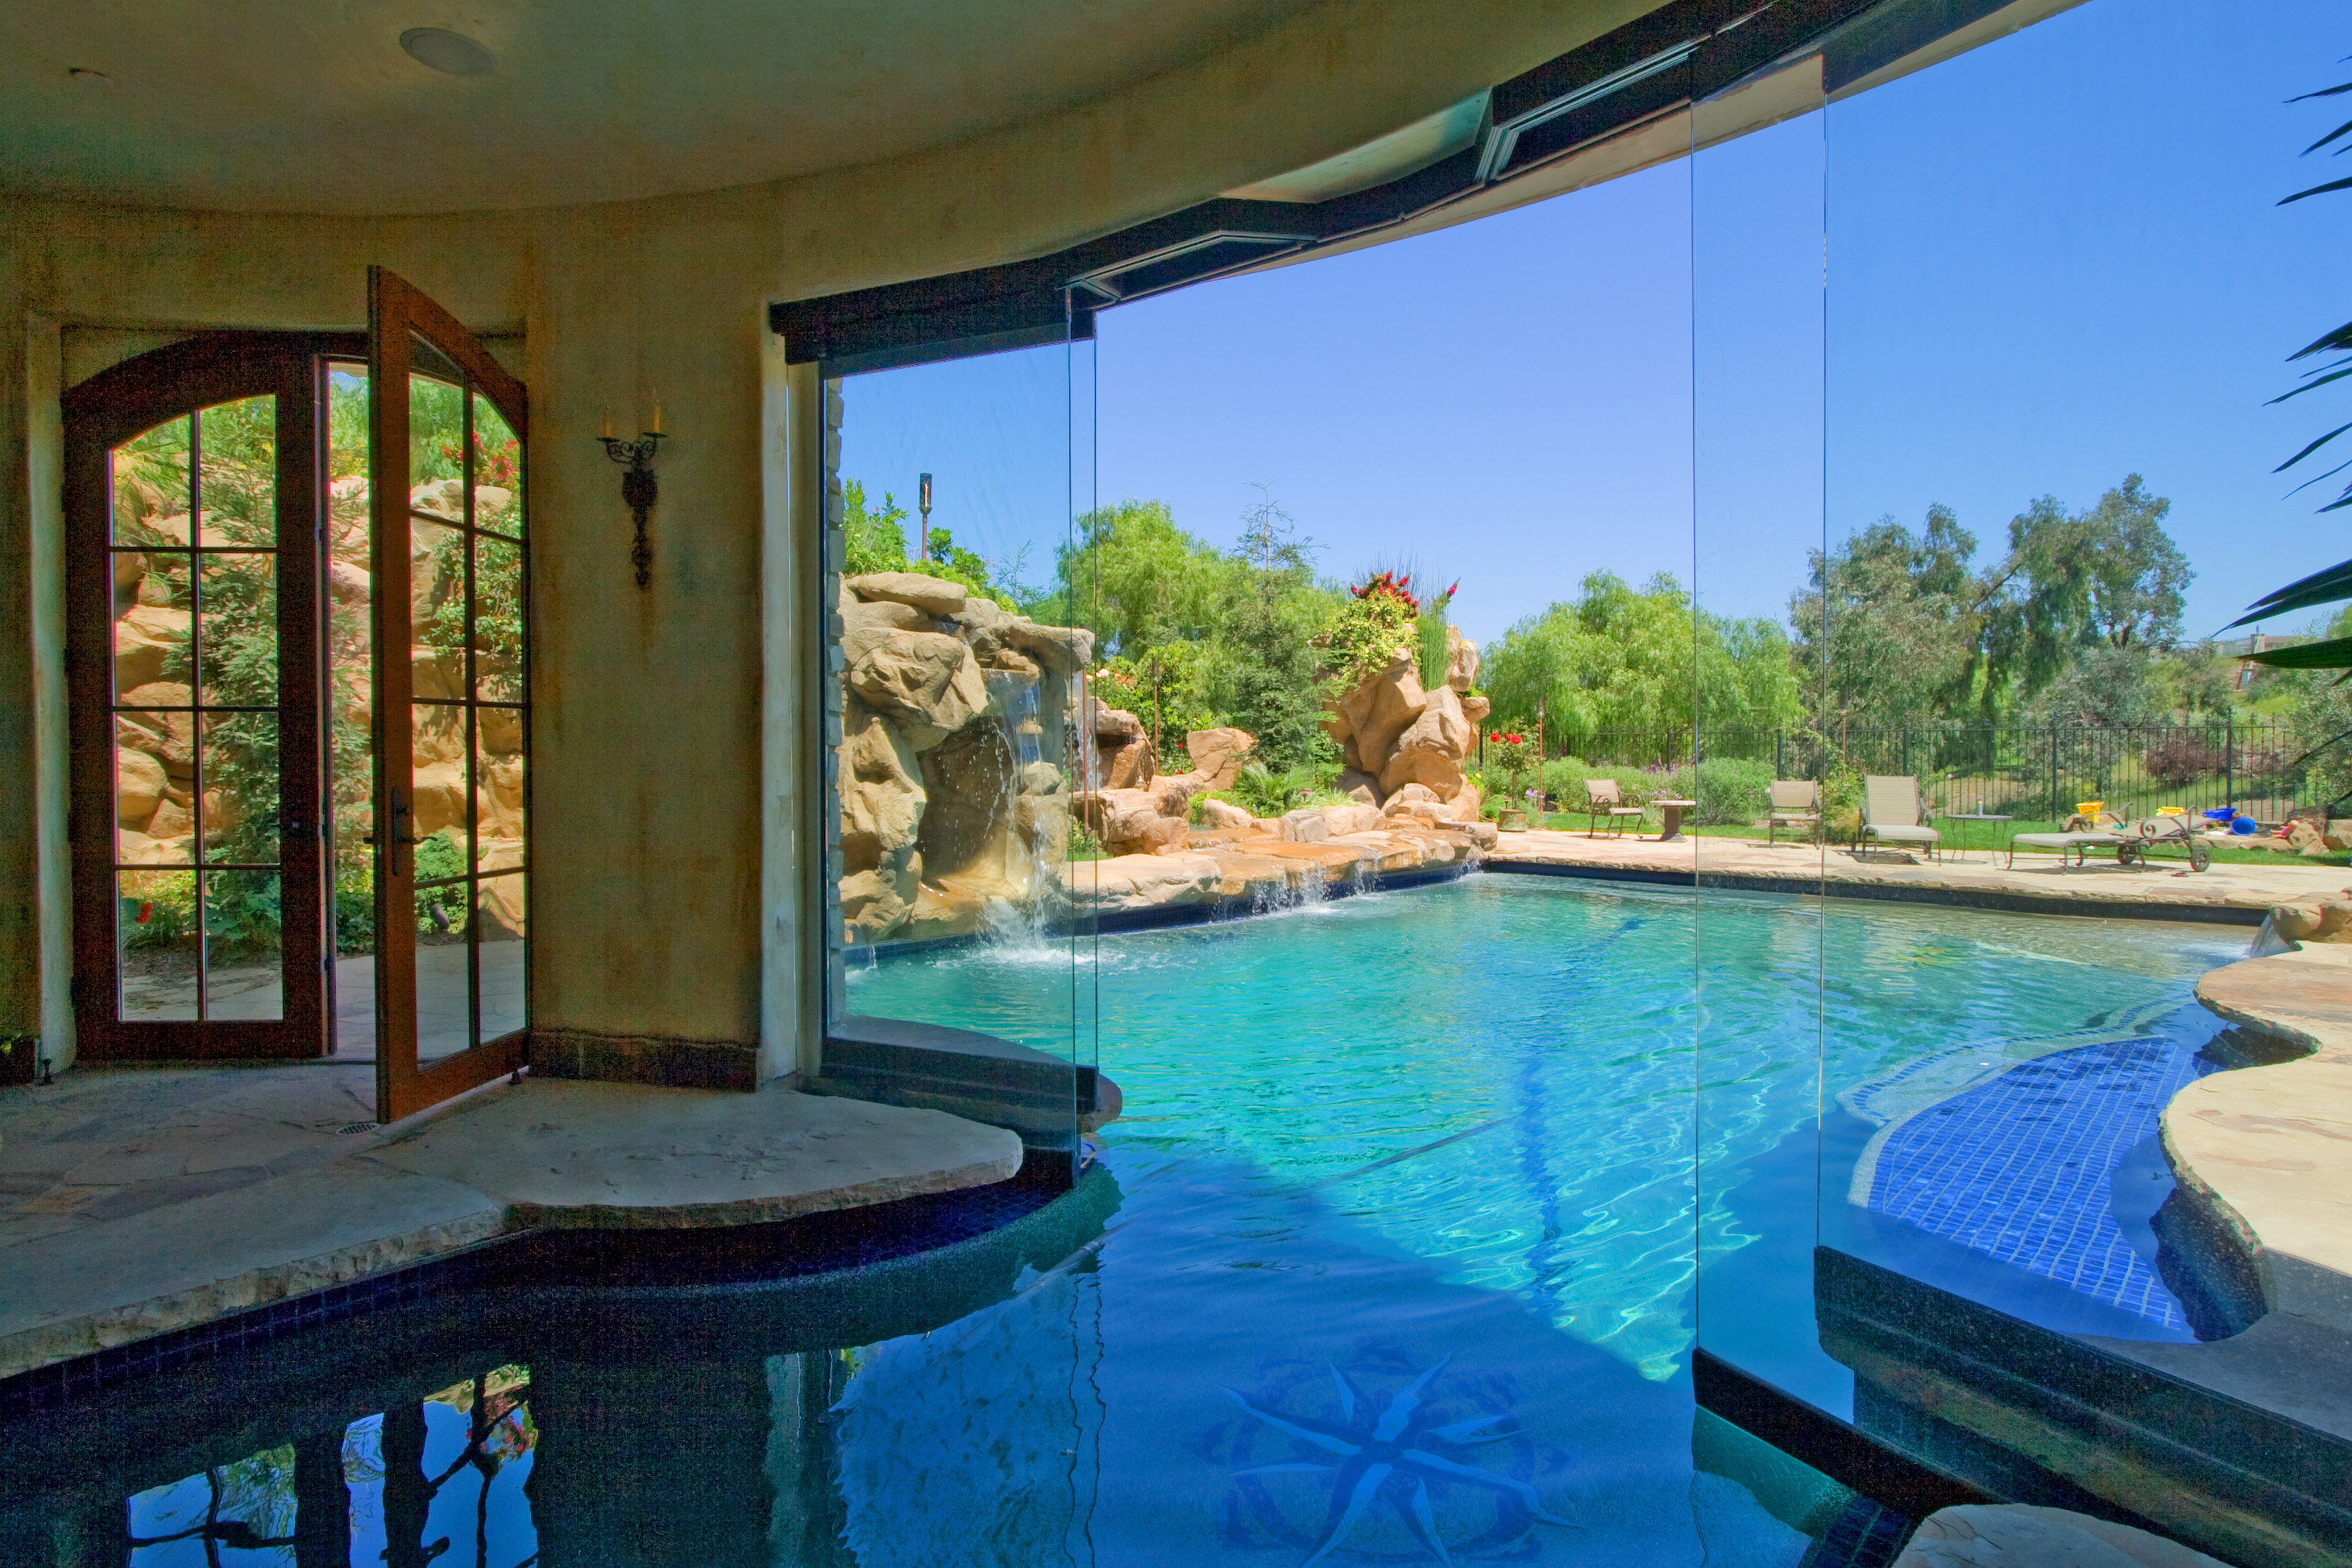 French chateau arc design grouparc design group for Convert indoor pool table to outdoor